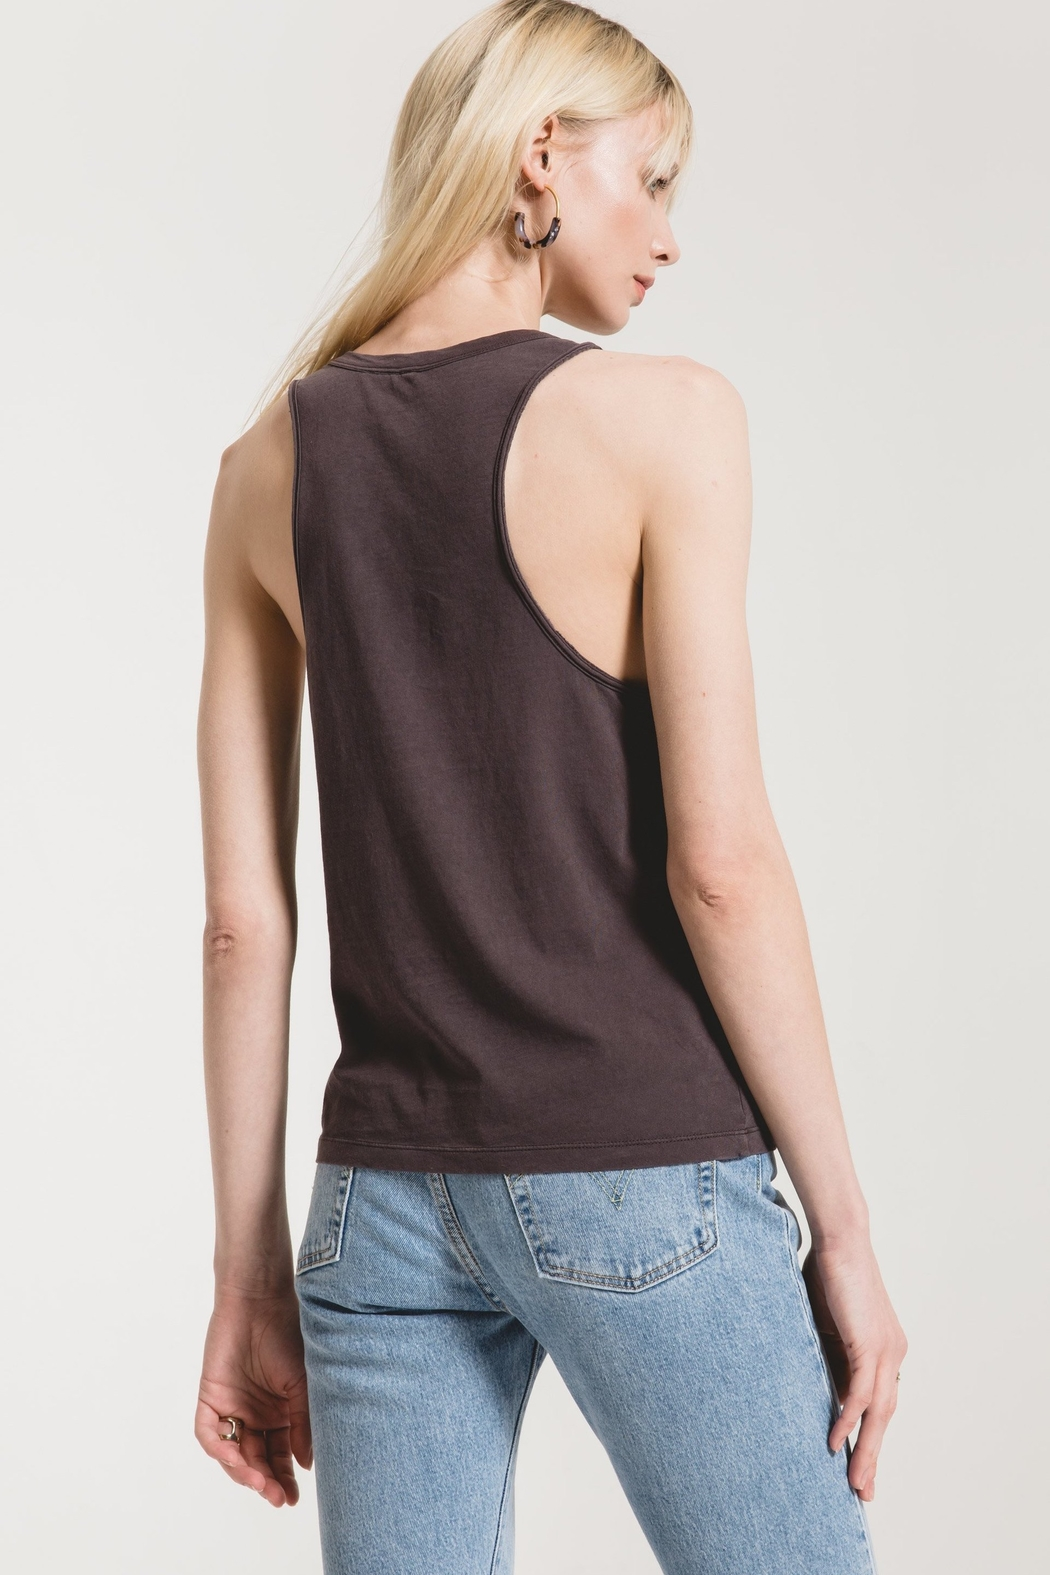 z supply Organic Cotton Muscle Tank - Side Cropped Image